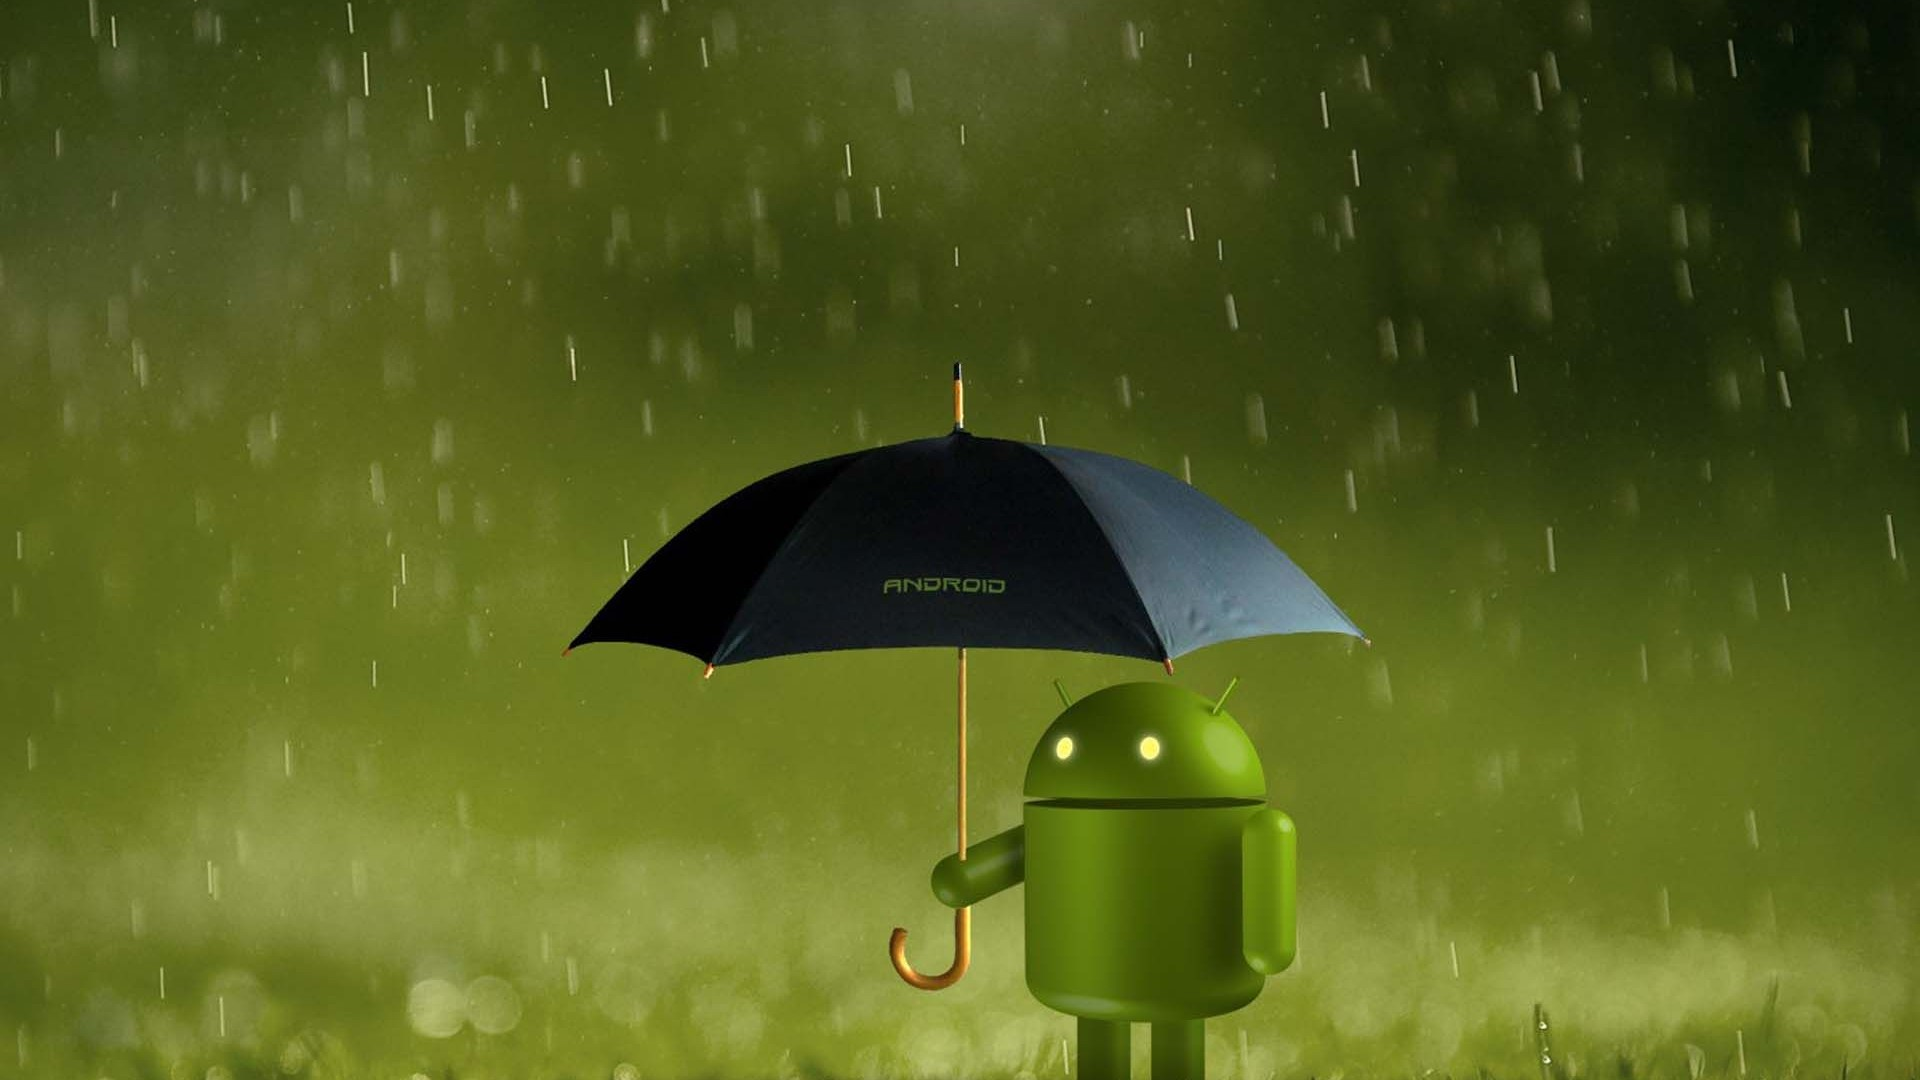 android wallpapers 24 1920 x 1080